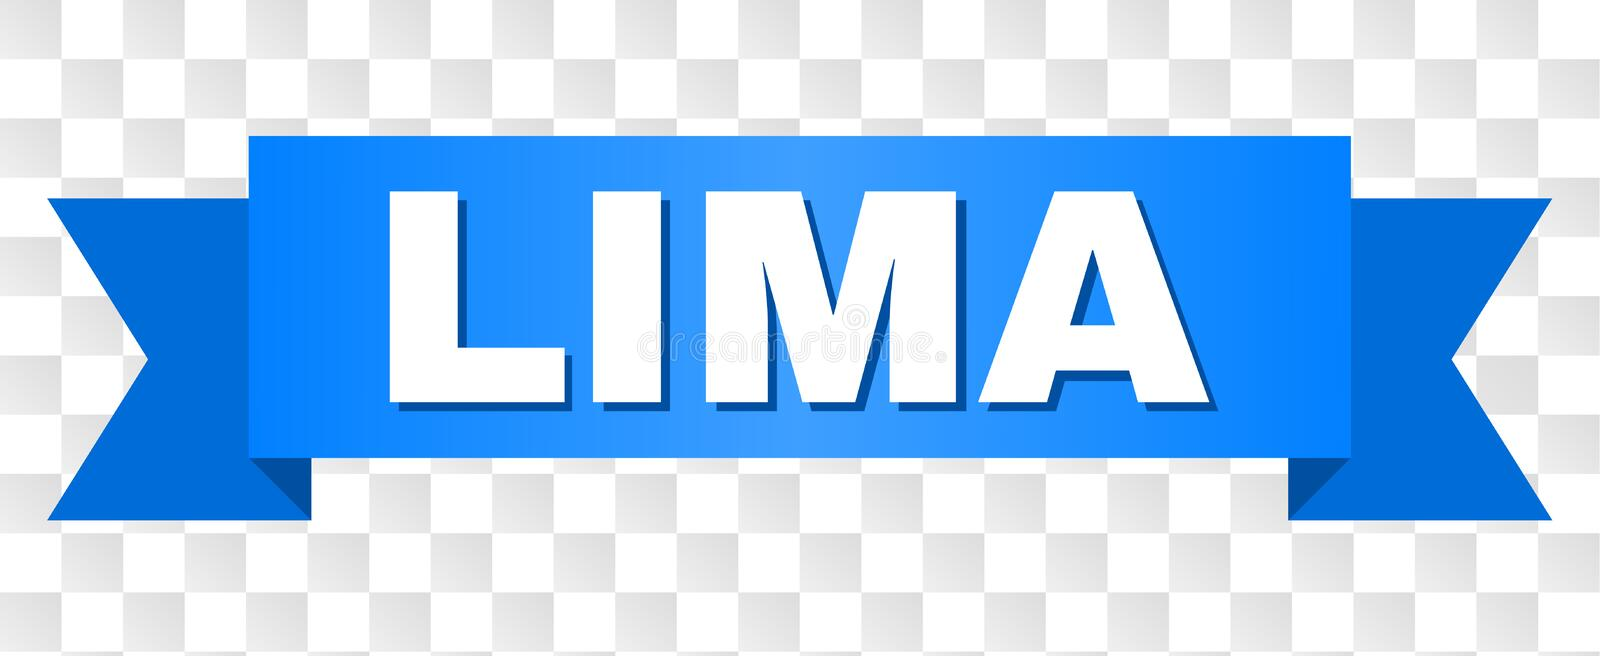 Blue Stripe with LIMA Text royalty free illustration